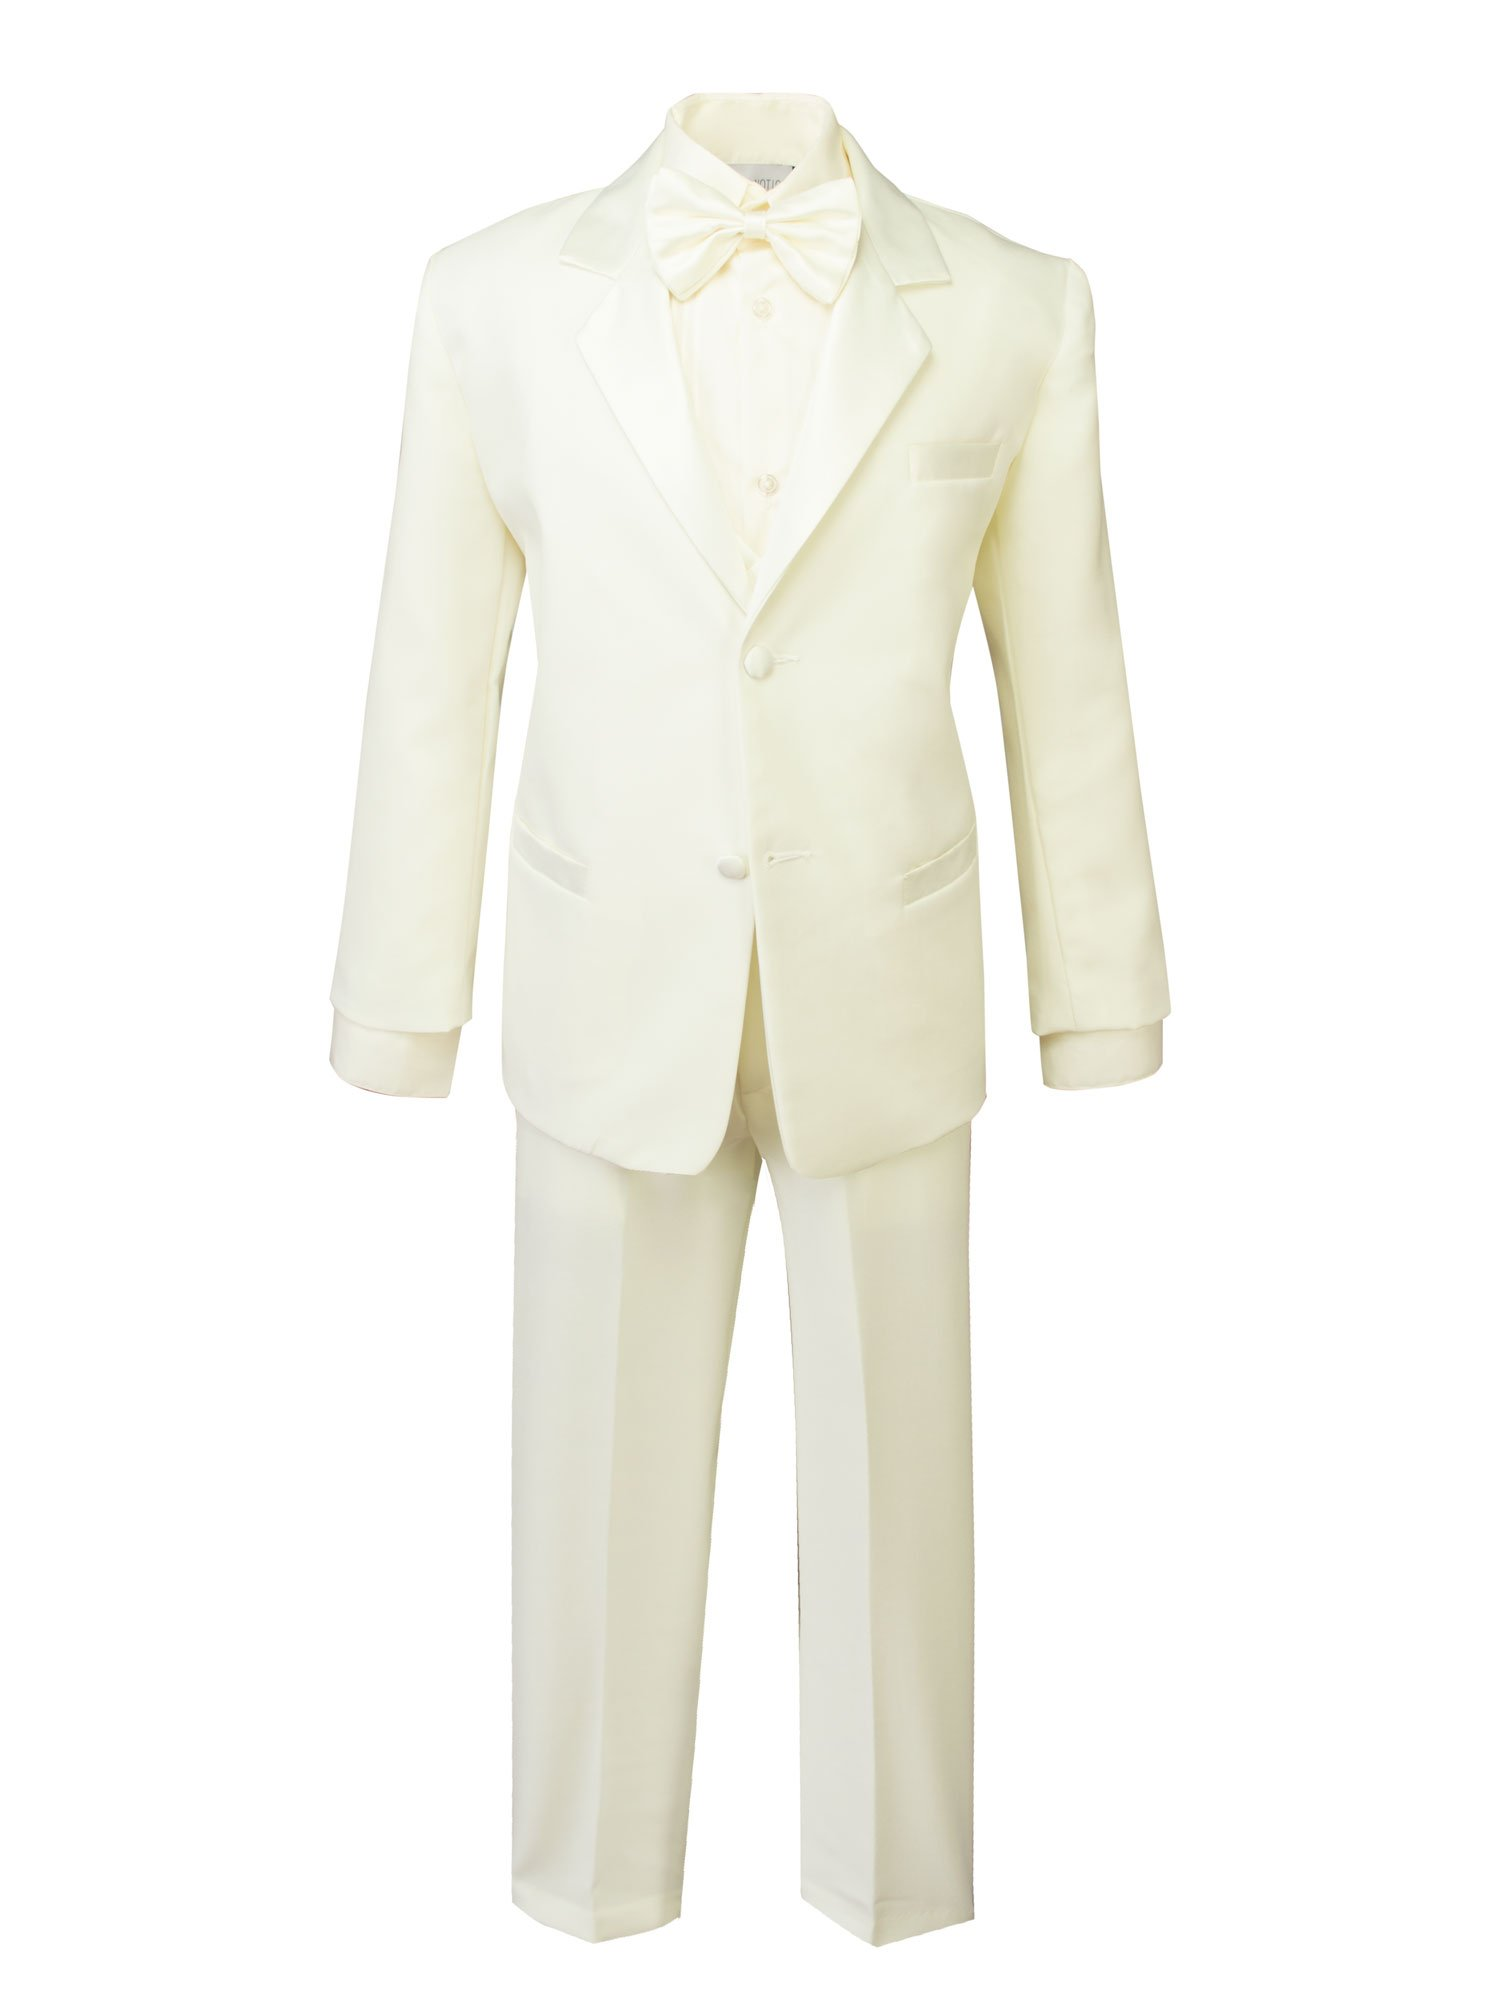 Spring Notion Boys' Classic Fit Tuxedo Set, No Tail 8 Ivory